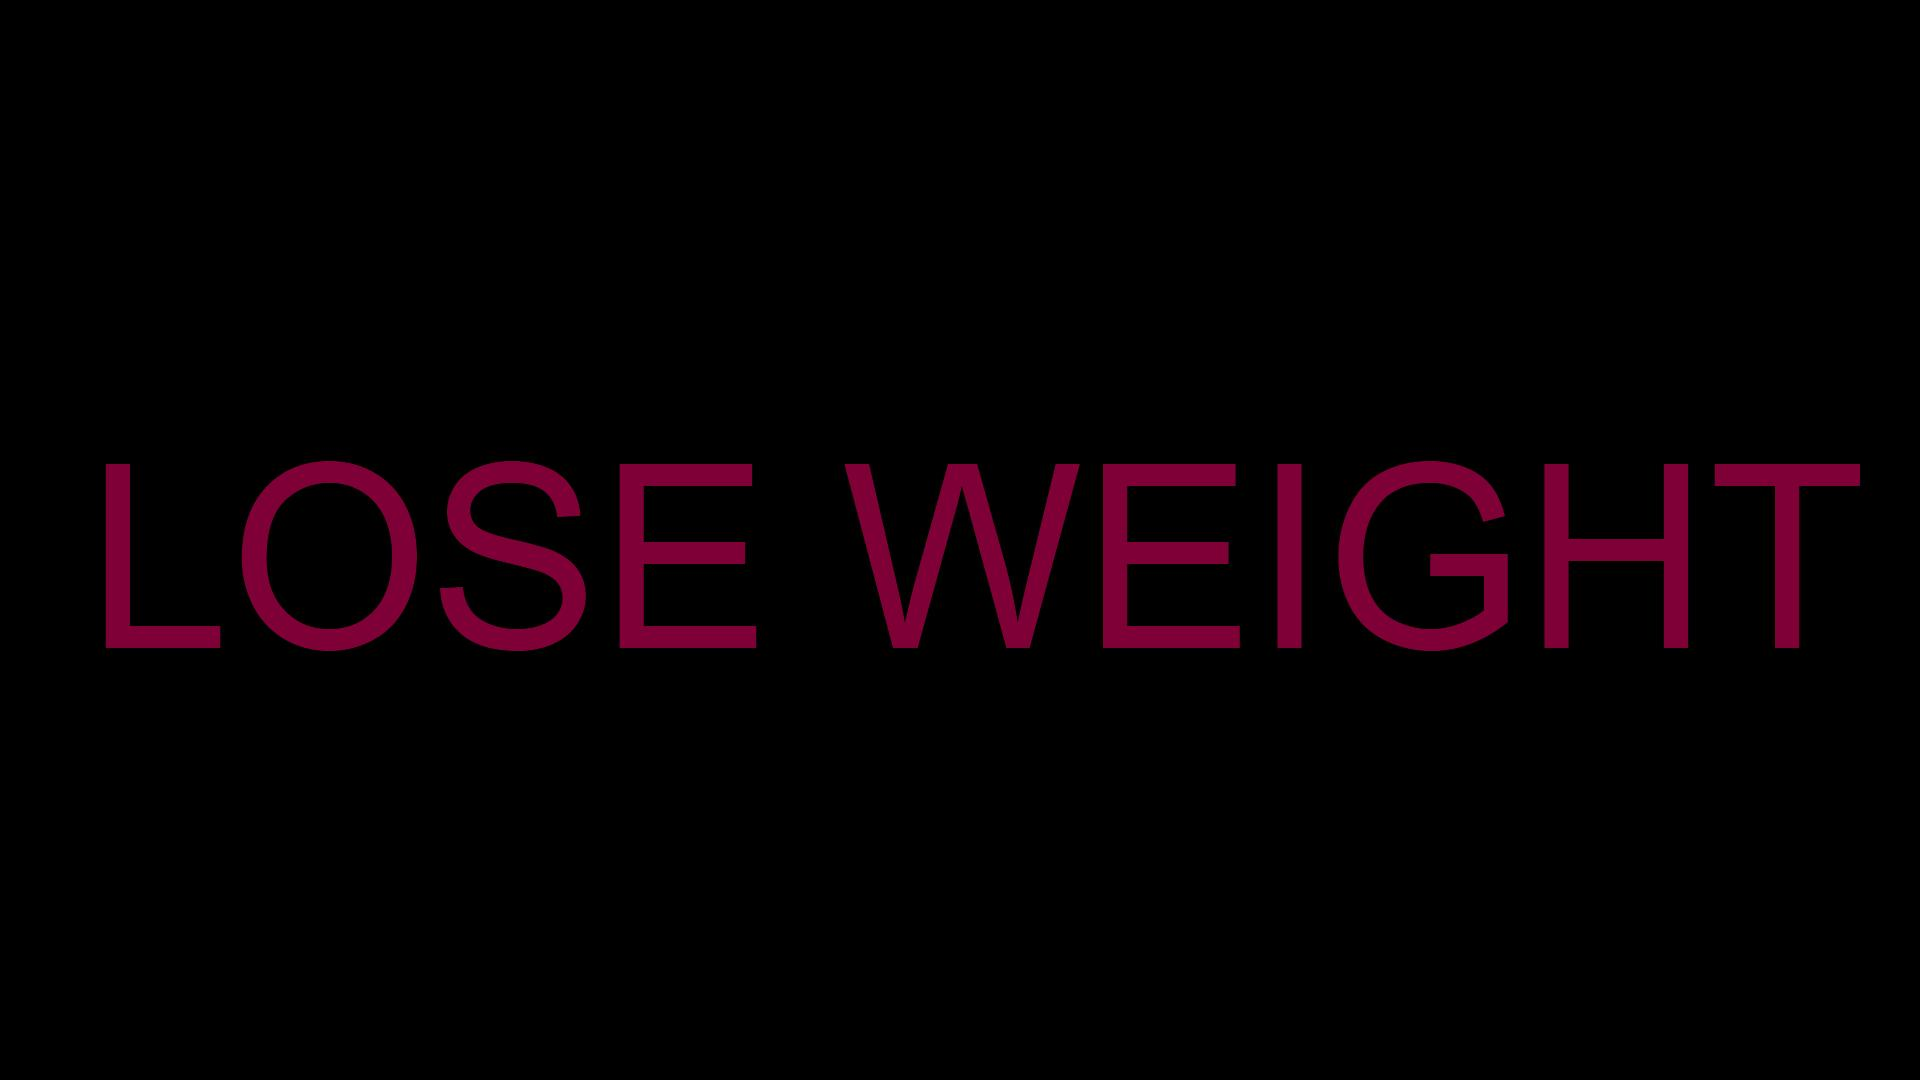 Lose Weight Wallpaper